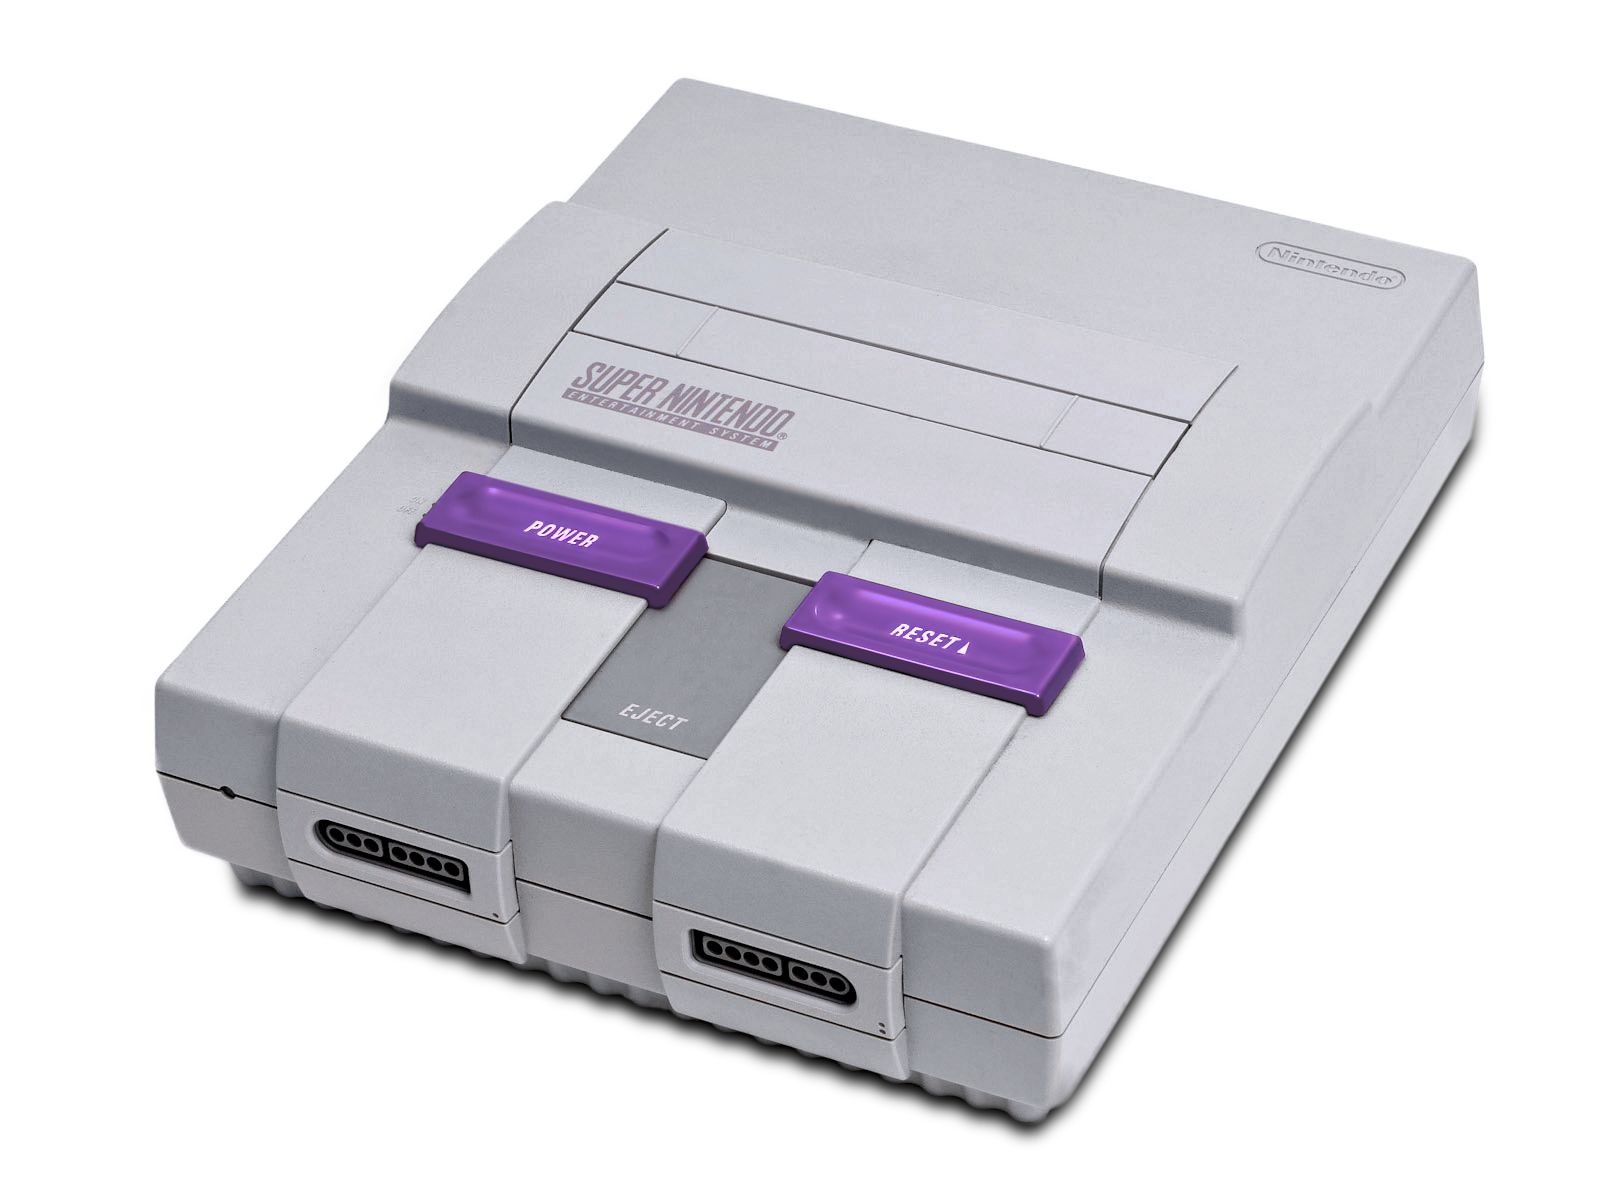 Snes console png. File us wikimedia commons